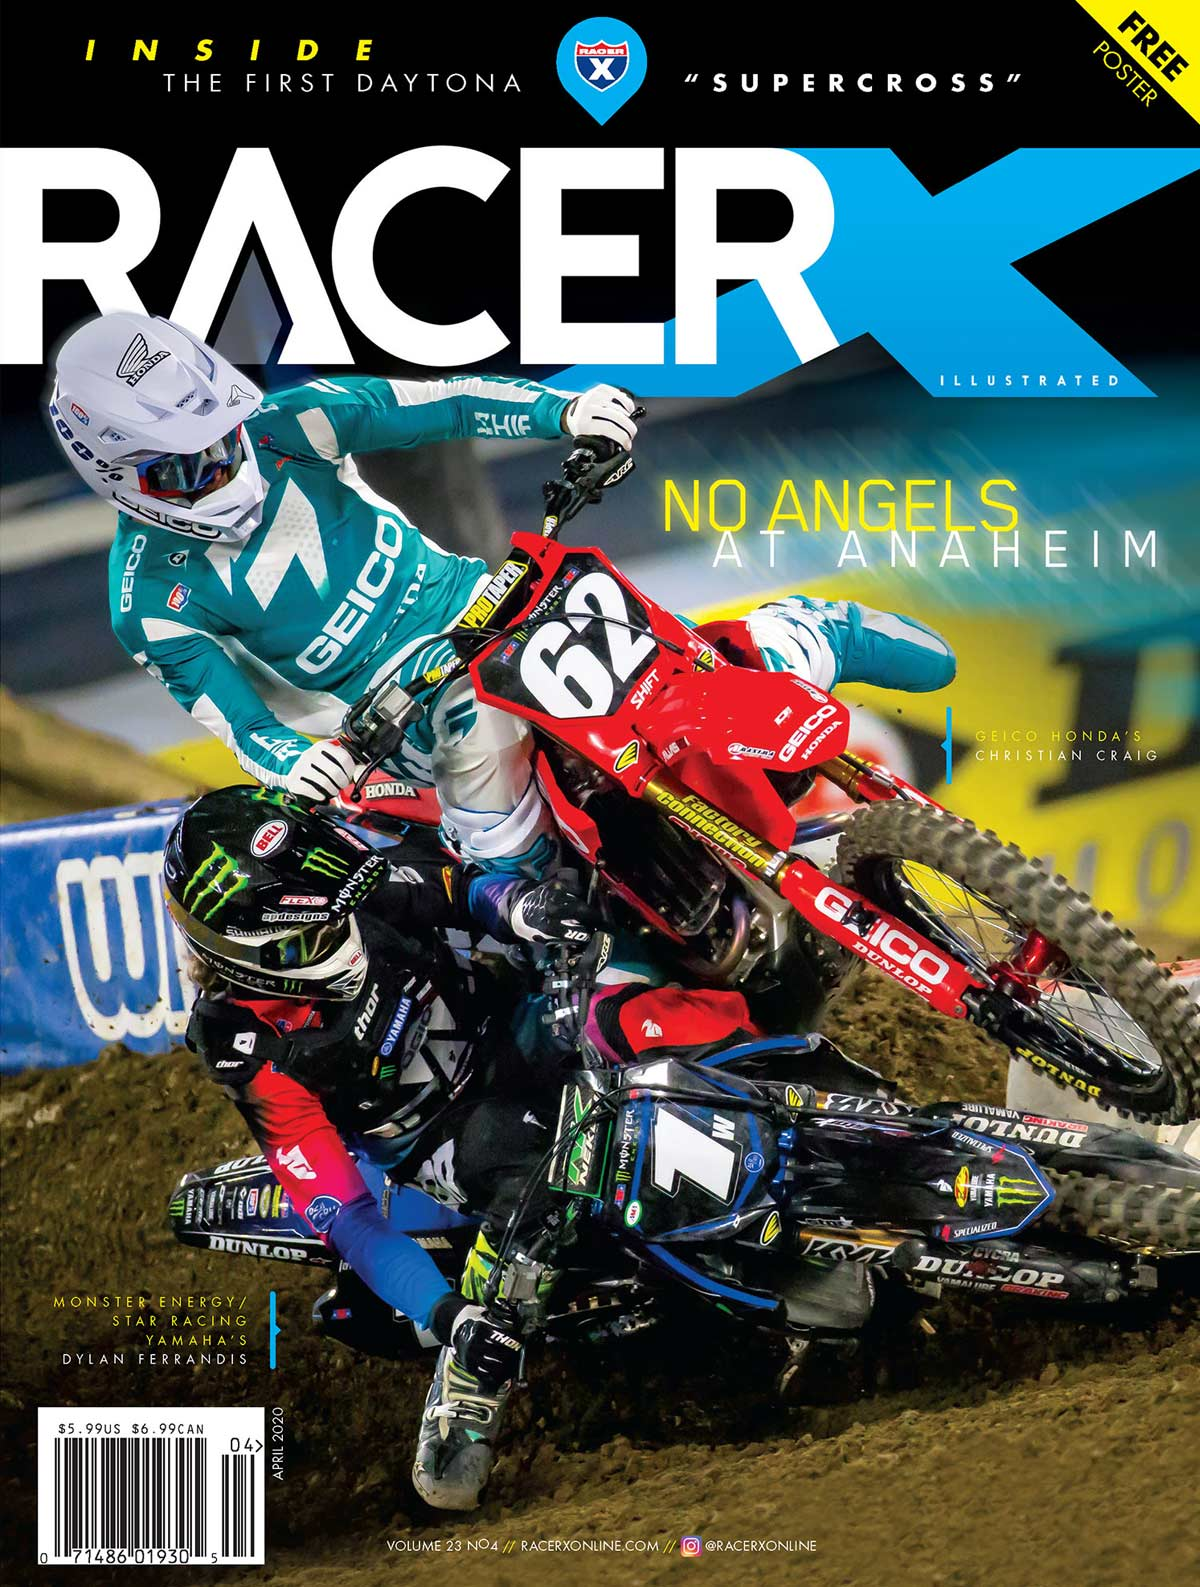 RacerX April 2020 Issue Cover